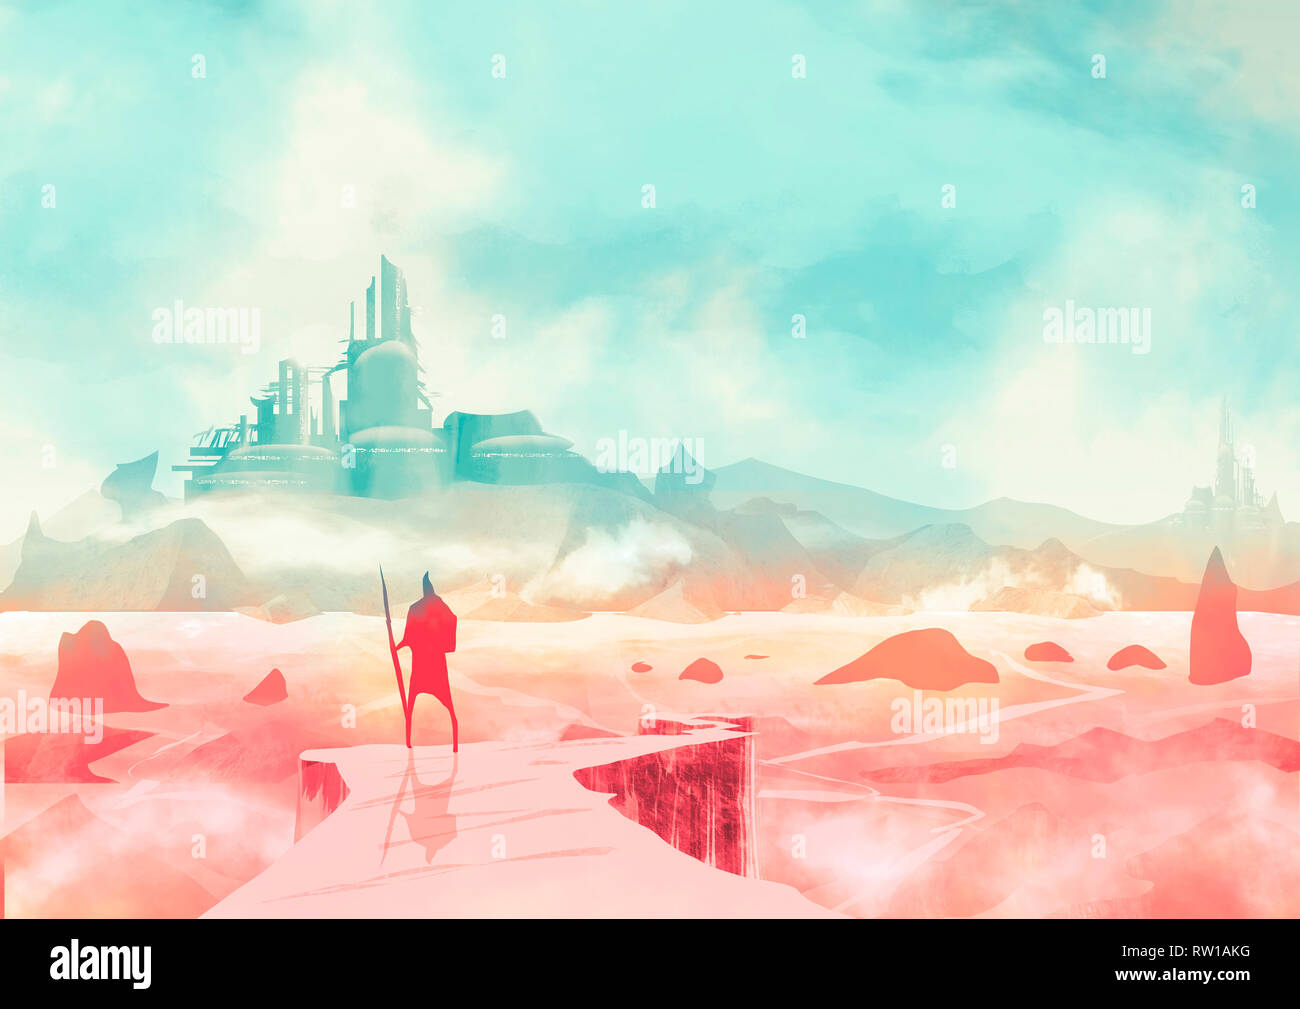 Apocalyptic landscape and post-apocalyptic fiction, a warrior with a spear looking from a cliff a city on the horizon. Sci-fi, scientific fiction - Stock Image